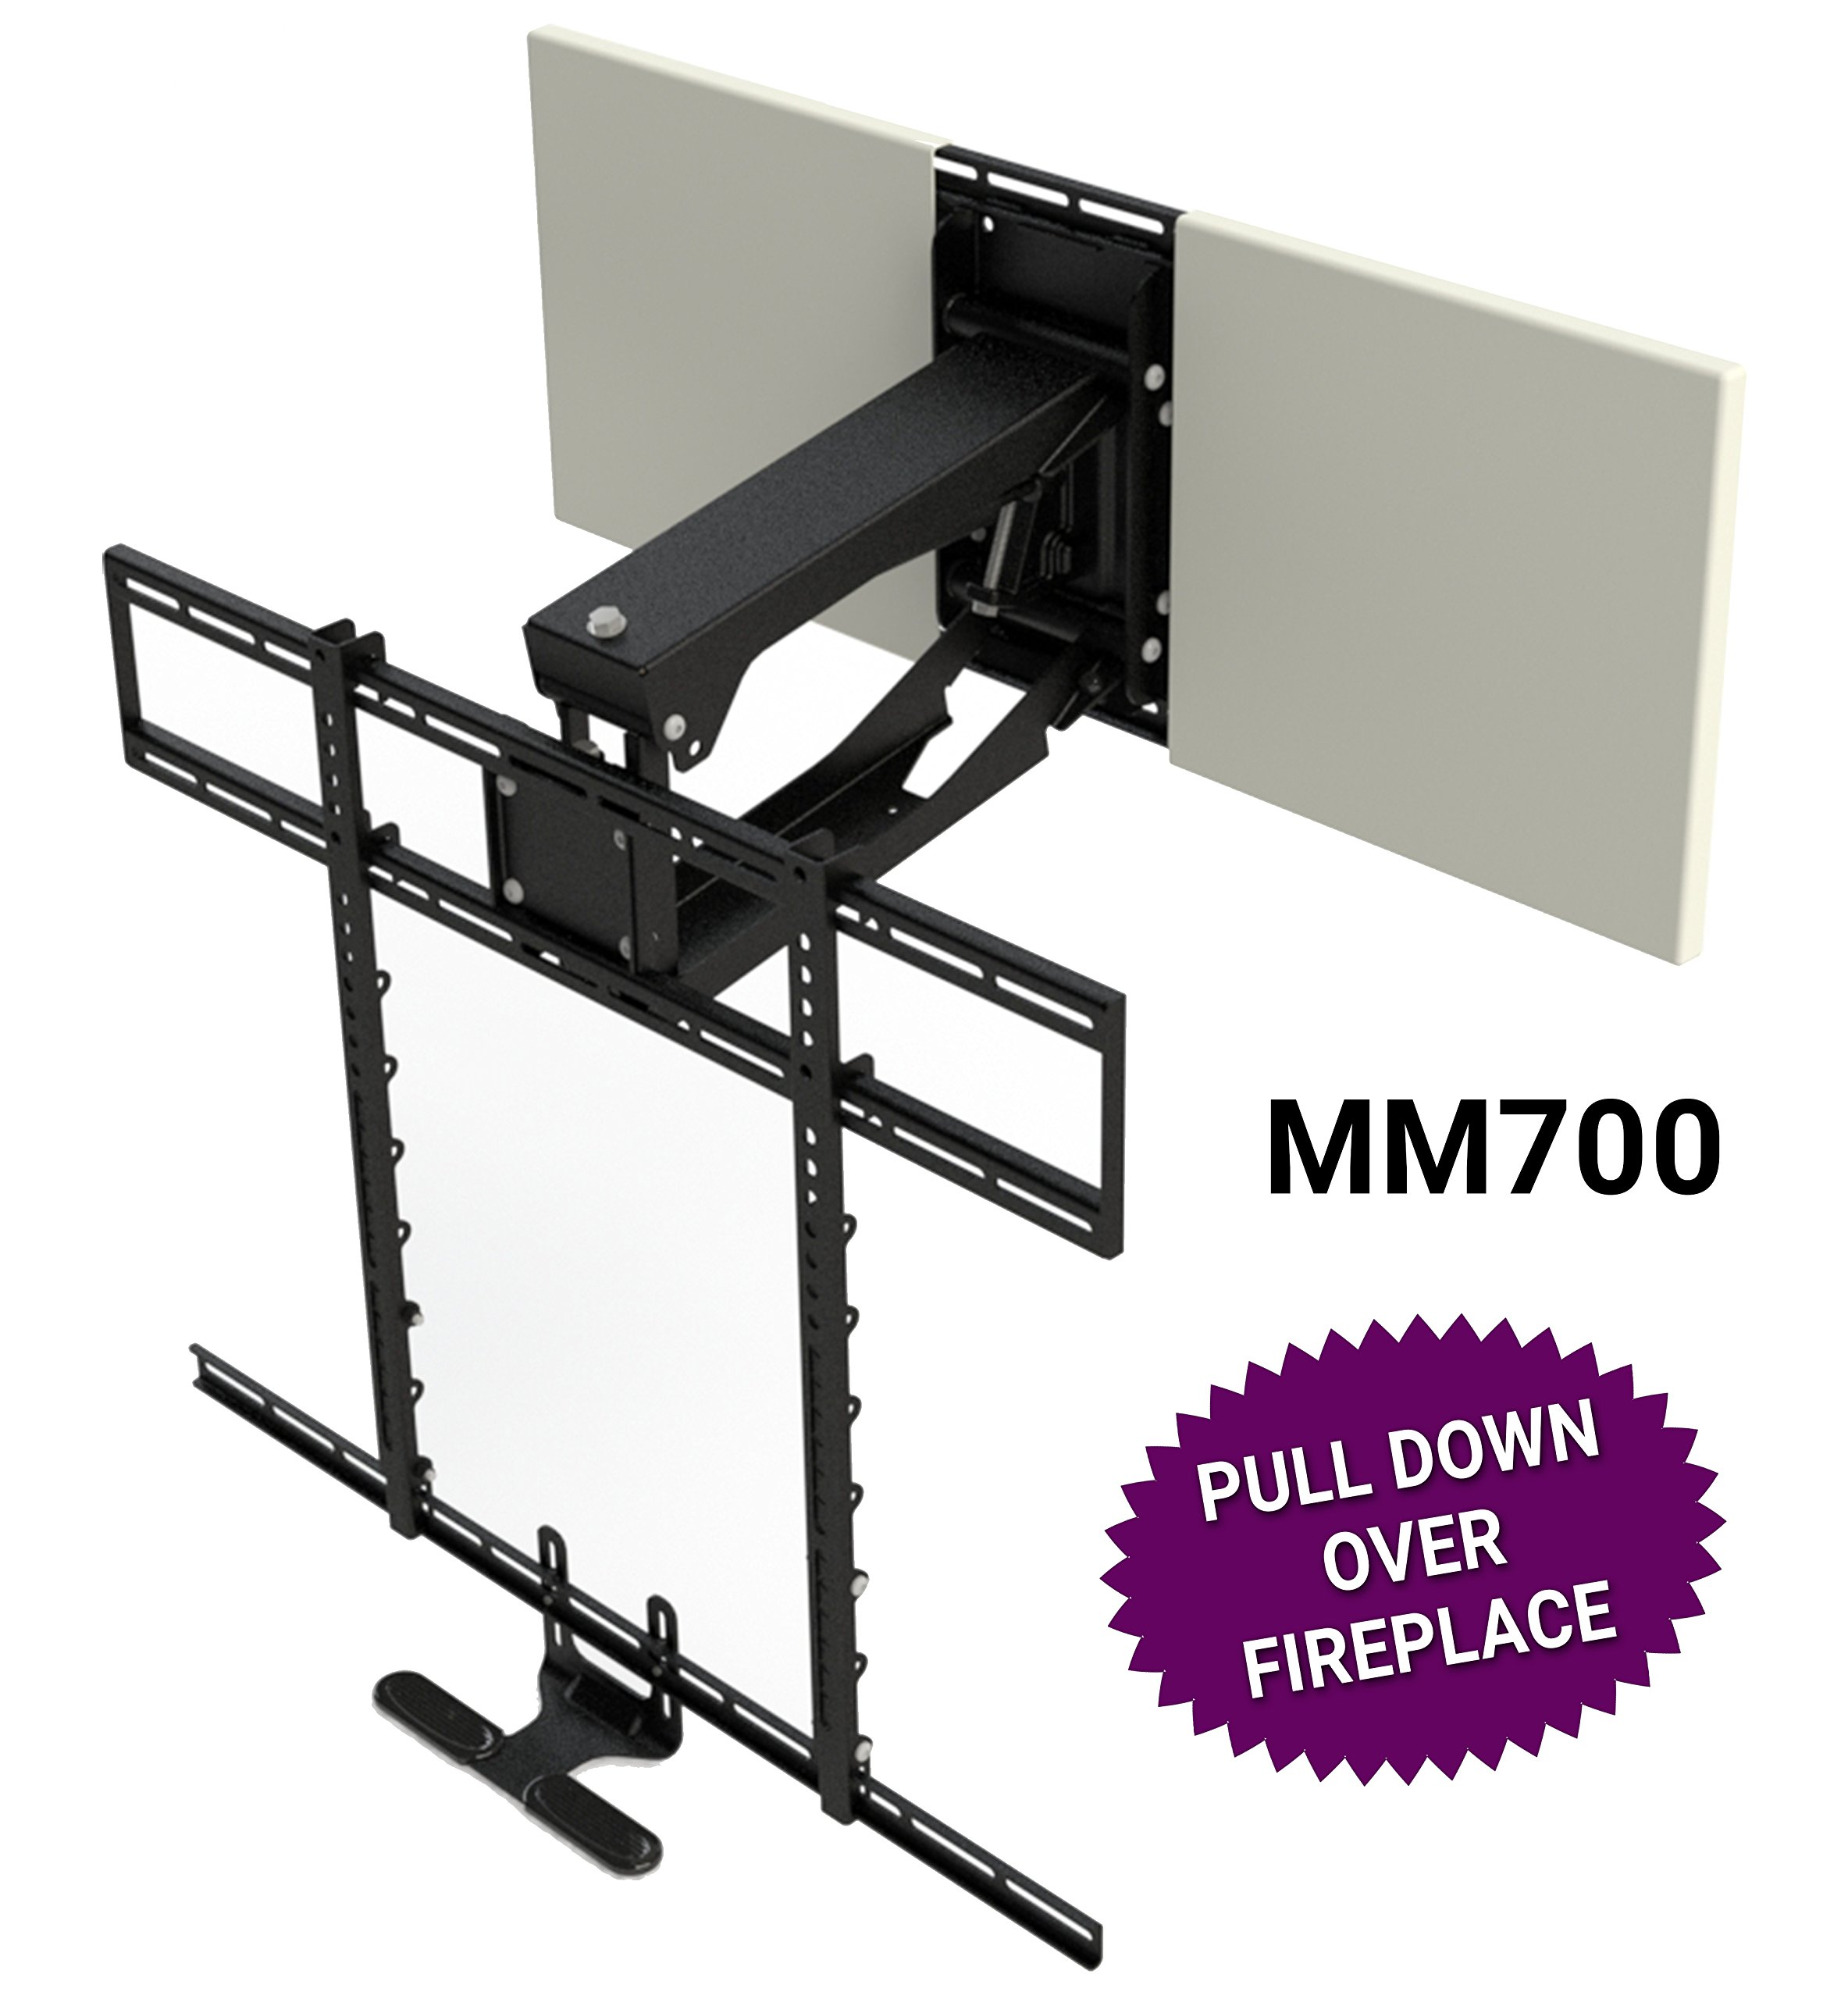 MantelMount MM700 Pro Series Above Fireplace Pull Down TV Mount for 45''-90'' TVs Over Mantel